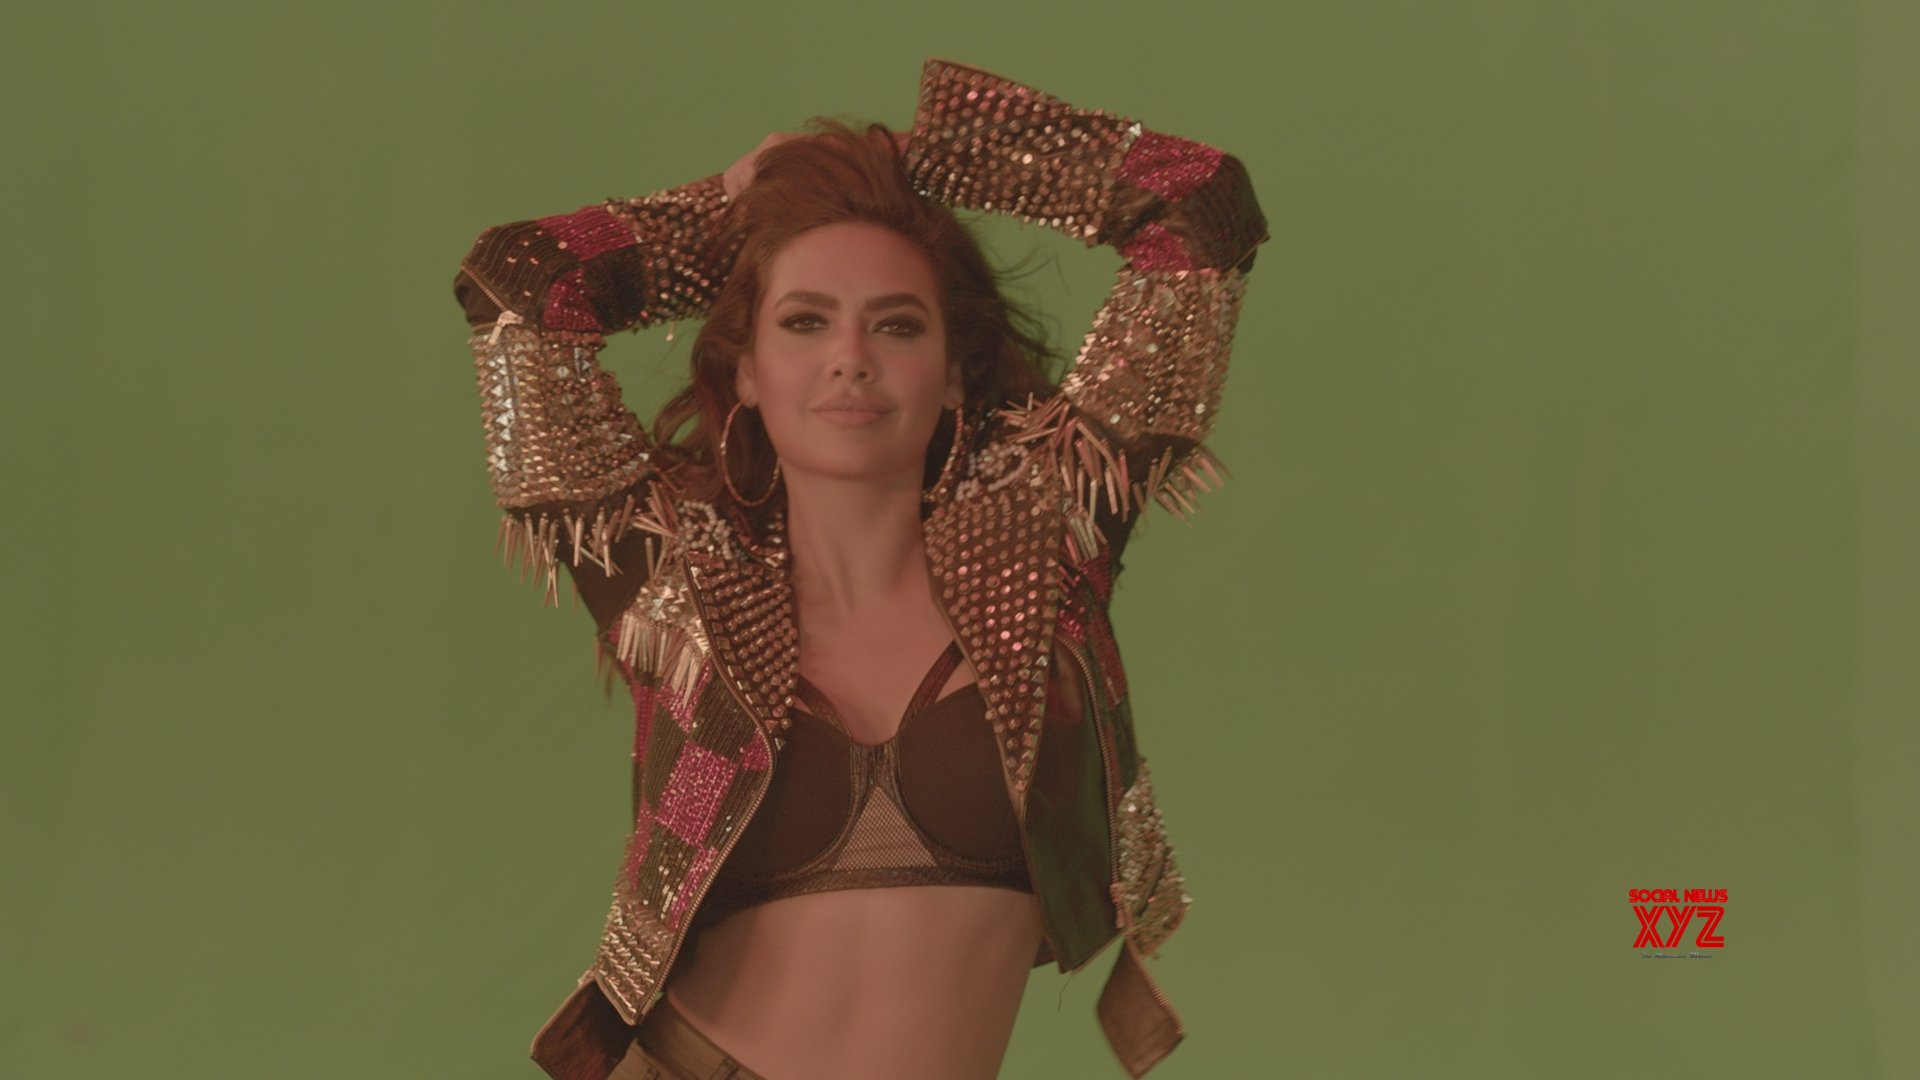 Esha Gupta to feature in video of bold dance track